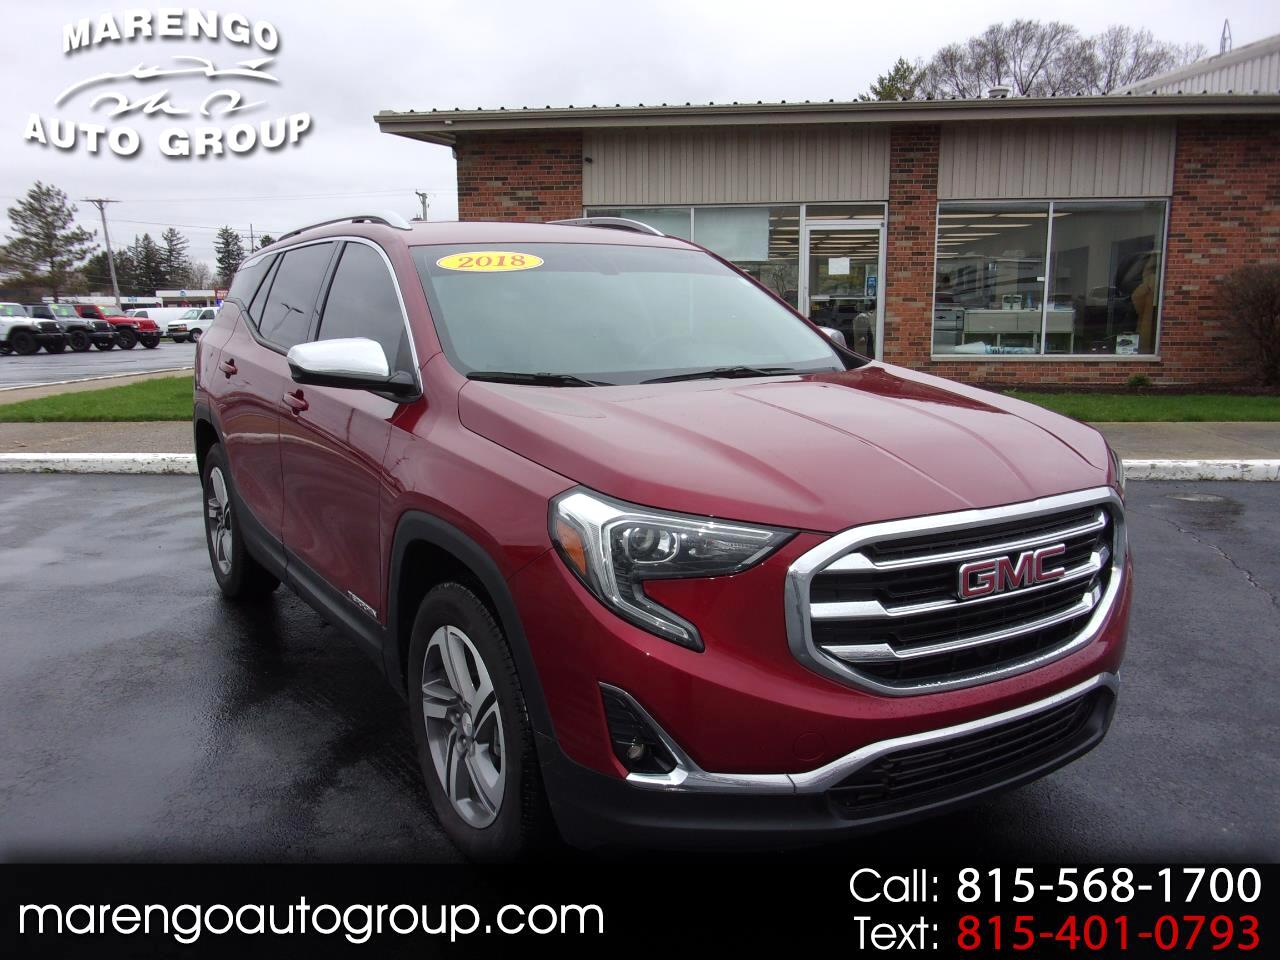 2018 Gmc Terrain Diesel Review Price >> Used 2018 Gmc Terrain Awd 4dr Slt Diesel For Sale In Marengo